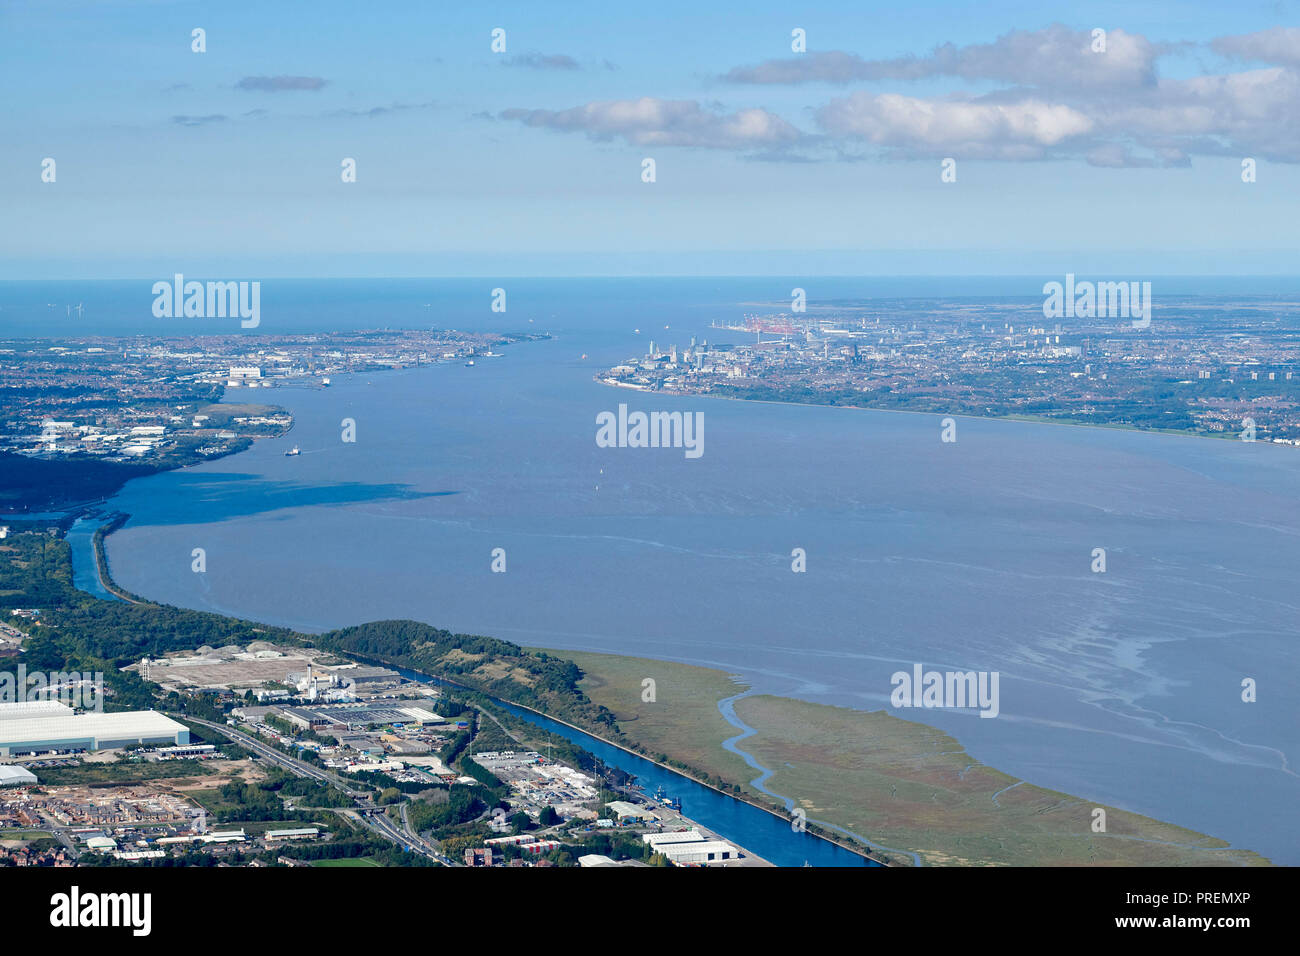 An aerial view of the Mersey Estuary, Birkenhead left and Liverpool right, north west England, UK, shot from Ellesmere Port - Stock Image